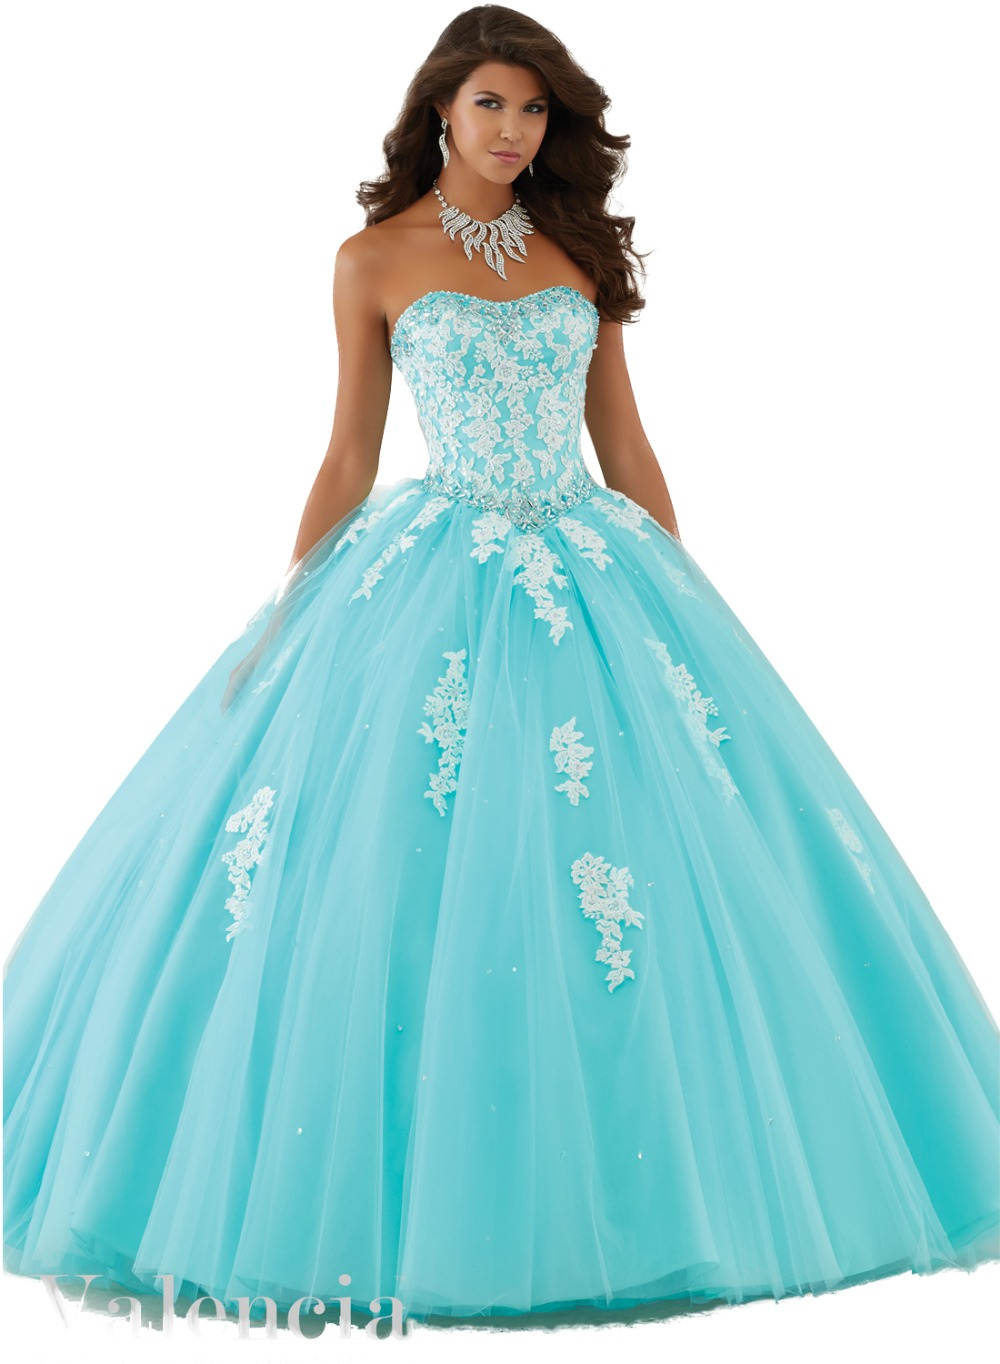 Compare Prices on Quinceanera White and Blue Dresses- Online ...